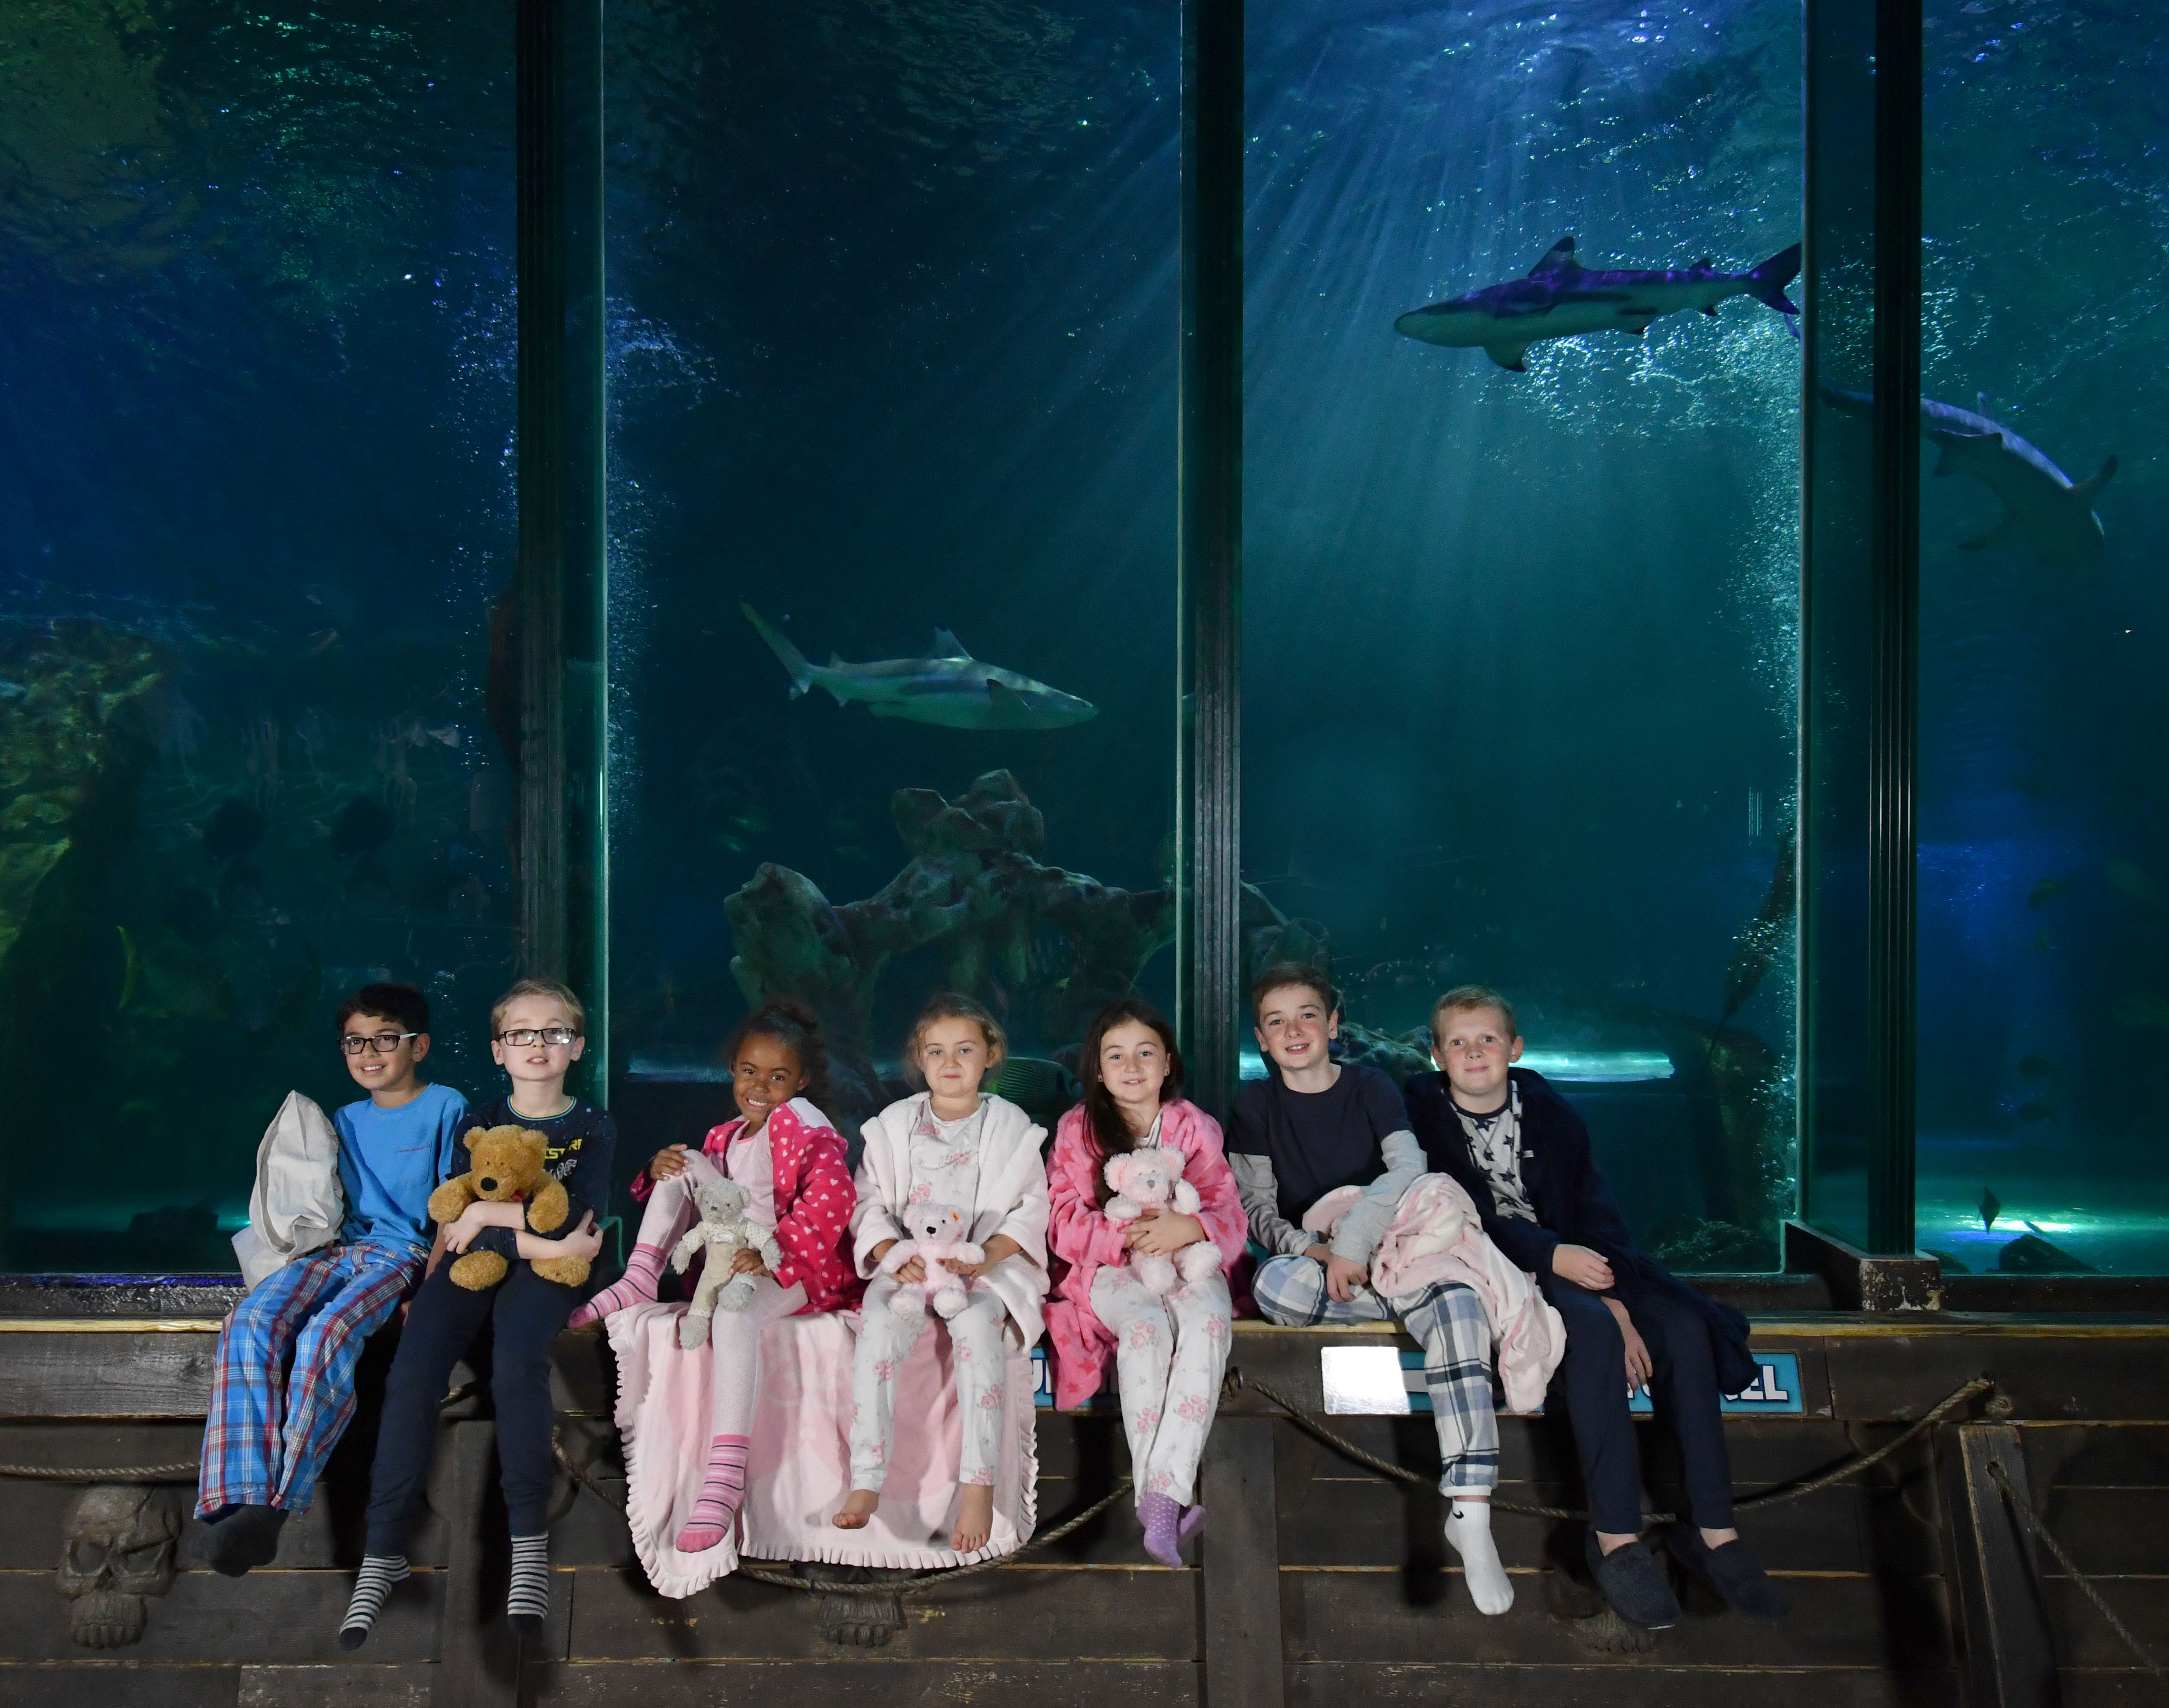 Its going to be a 'blue Christmas' for gift-buyers at SEA LIFE Blackpool